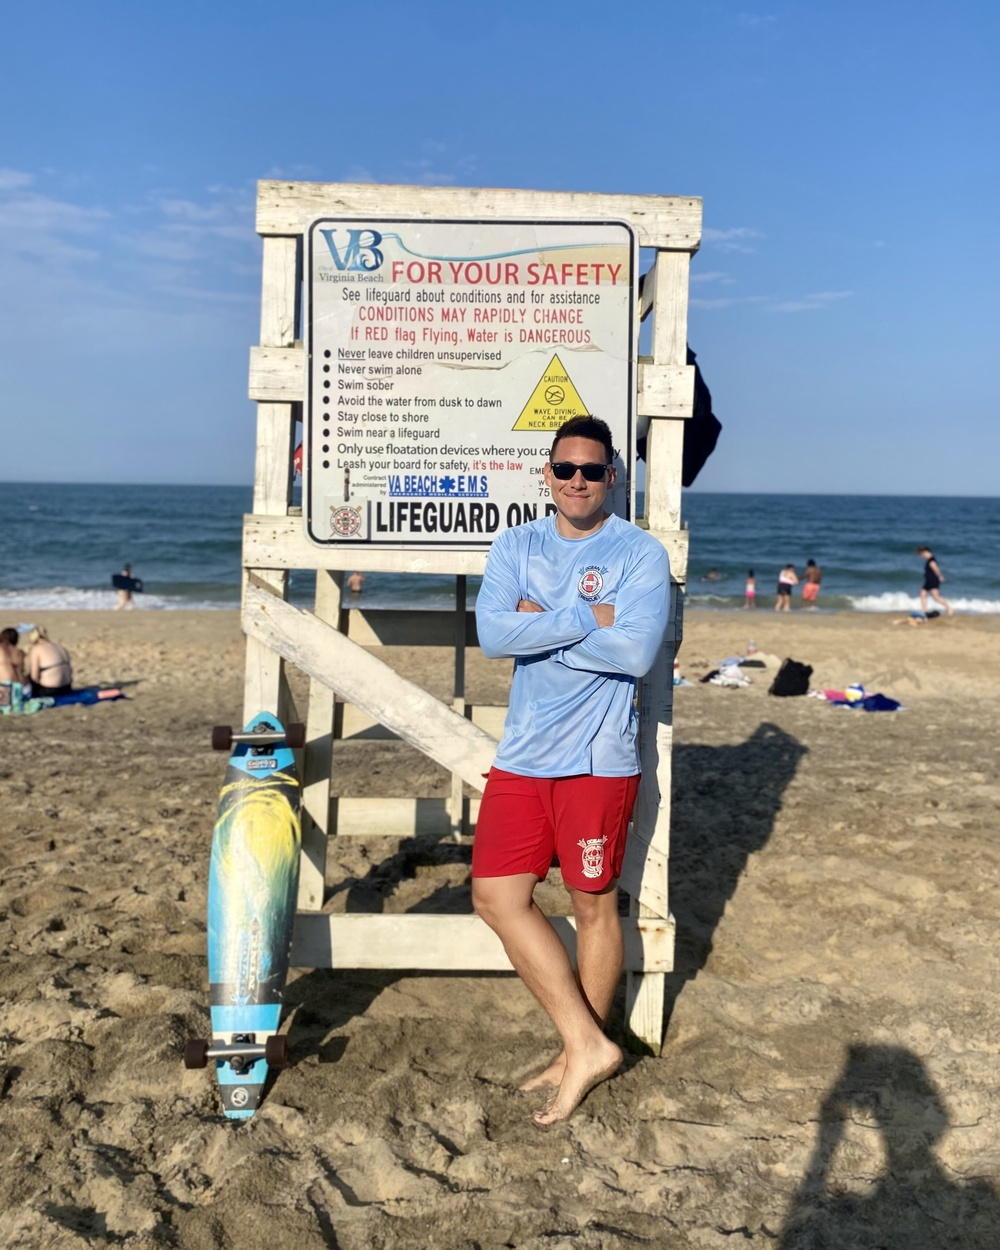 LIFEGUARD ON DUTY WHILE MARINE OFF DUTY